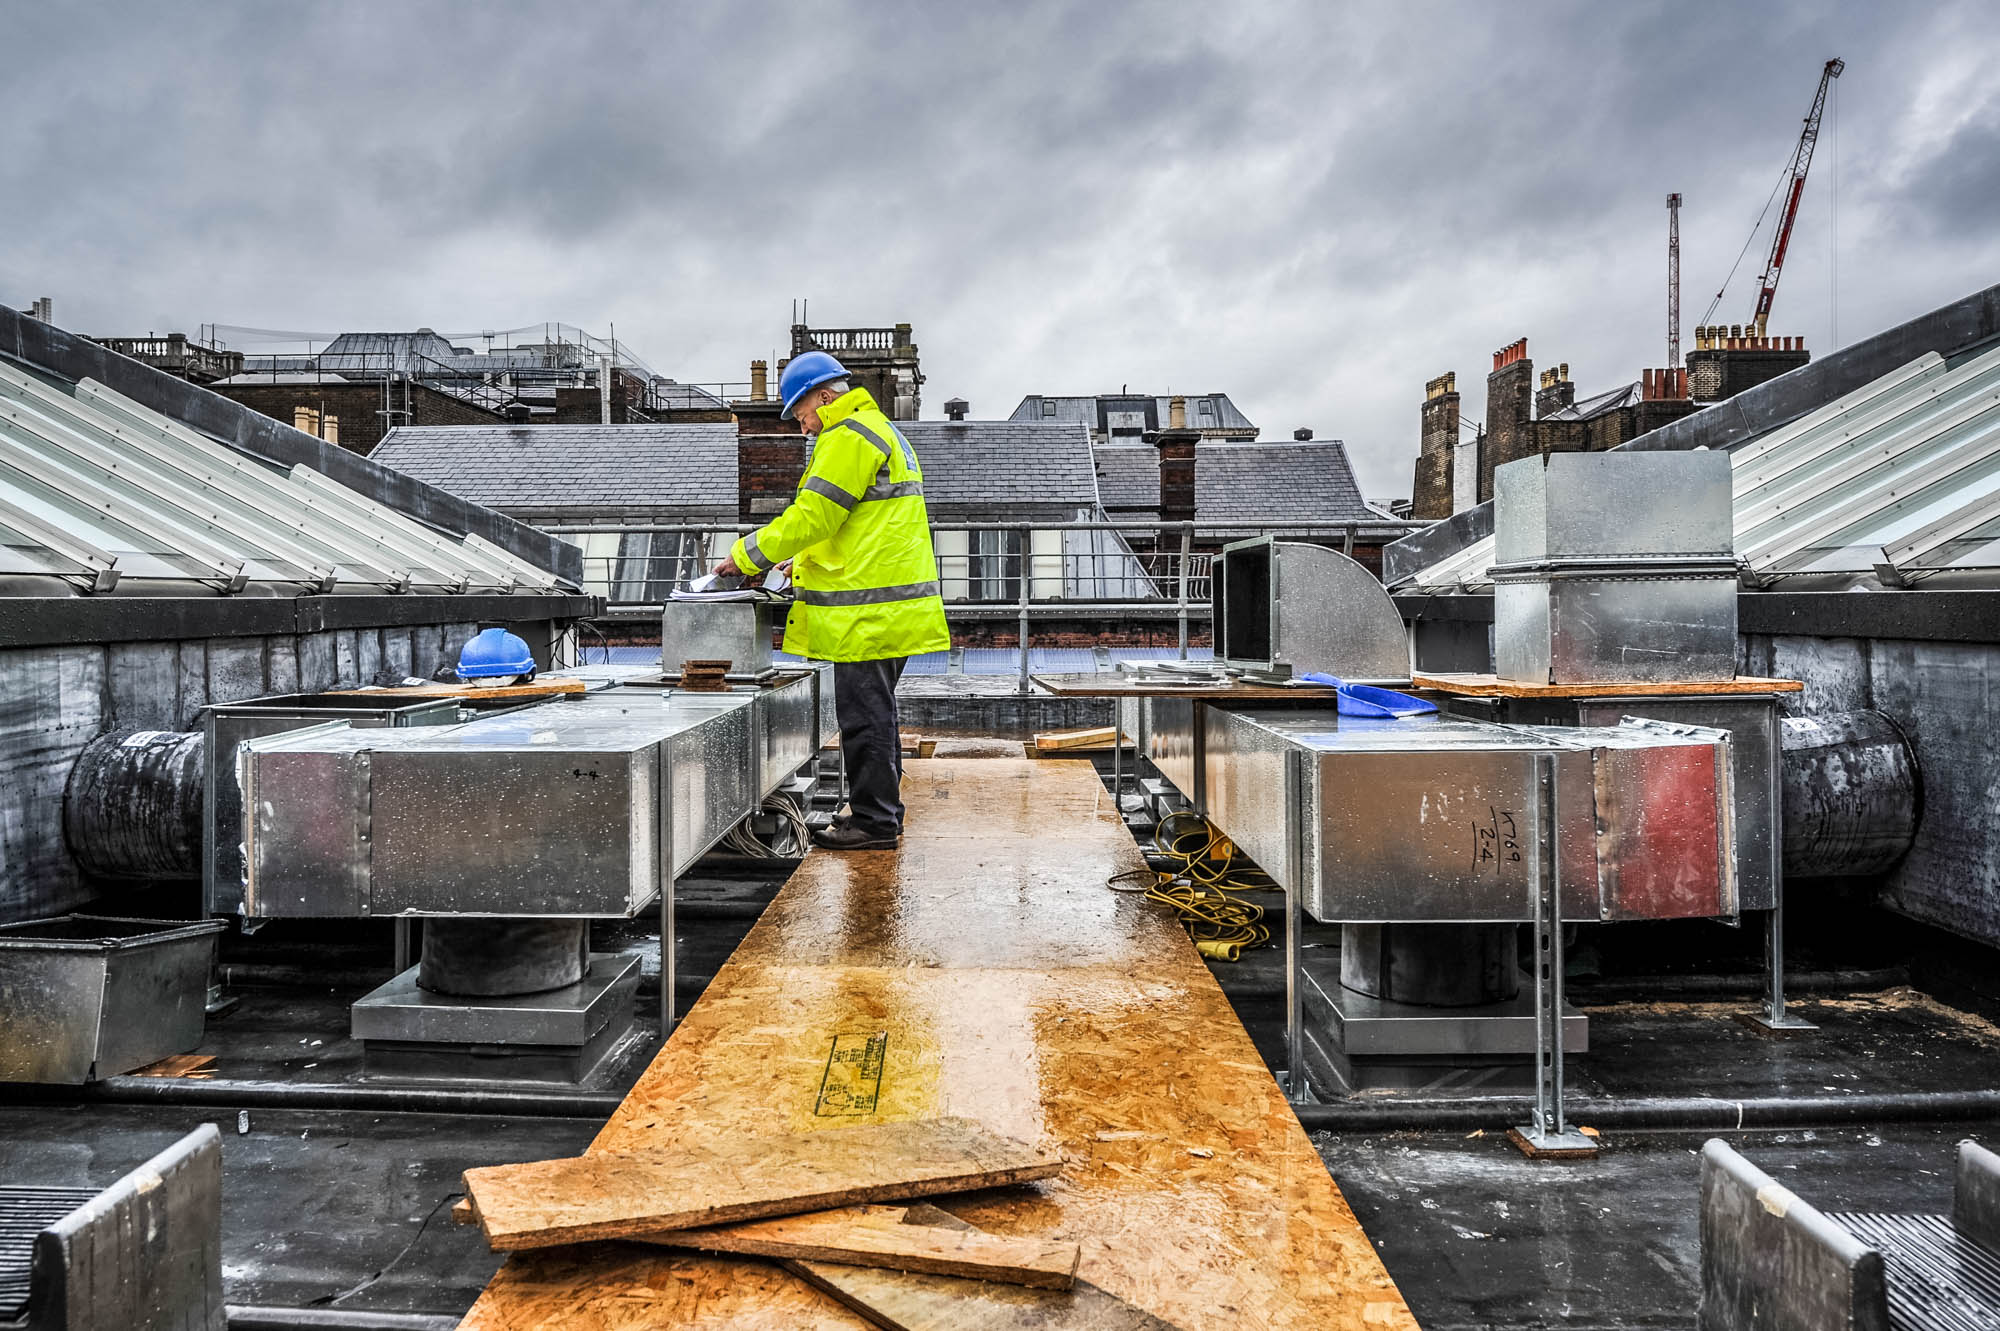 A photo of an architect reviewing plans on the rooftop of a building in central london